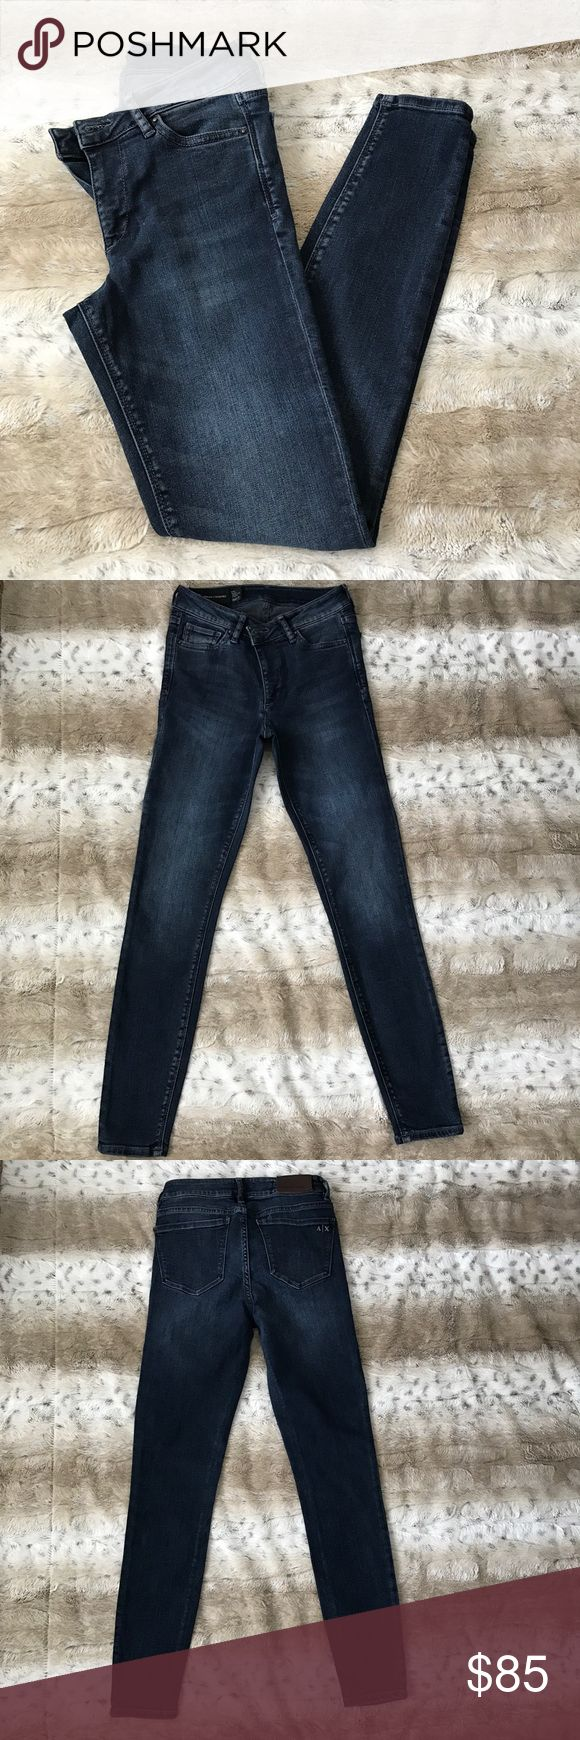 Armani Exchange Super Skinny Ankle Jeans Worn once!🔹Super skinny🔹Super stretch🔹Ankle length🔹Perfect with heels or sandals for spring/summer!🔹Mid rise A/X Armani Exchange Jeans Ankle & Cropped